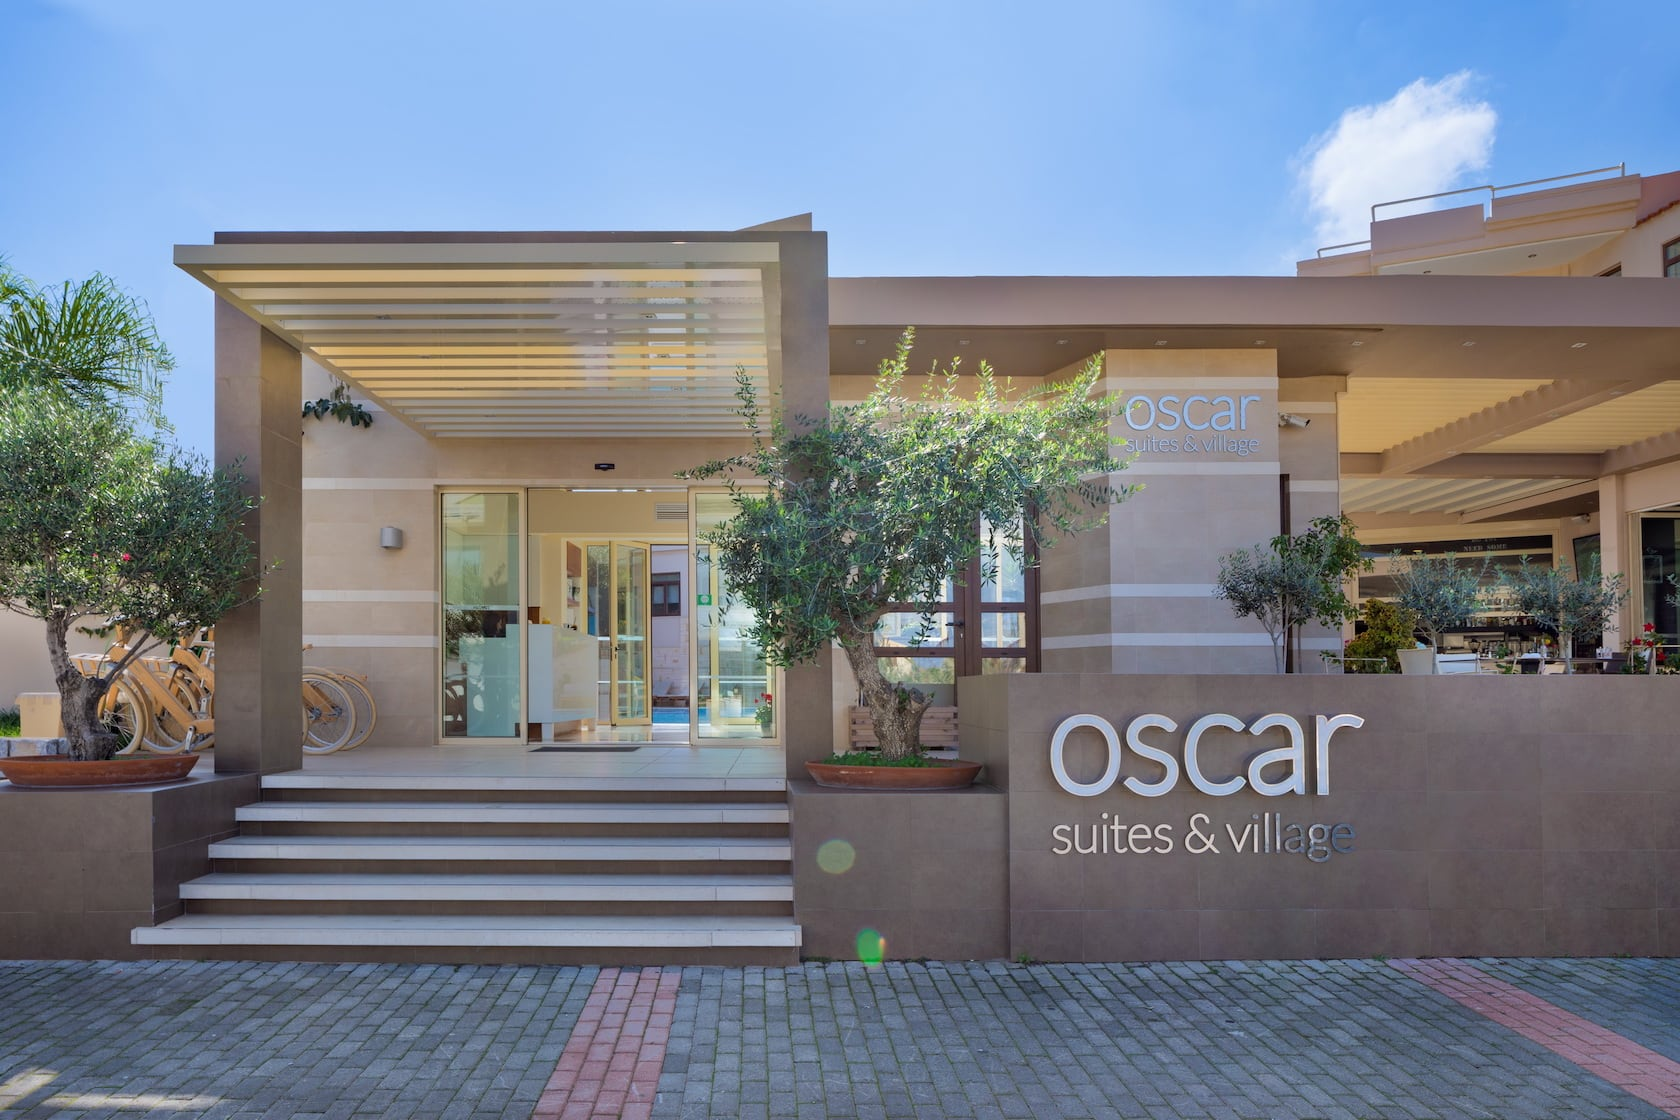 Front of the Oscar Suites & Village displaying the logo of the hotel in Agia Marina in Chania, Crete